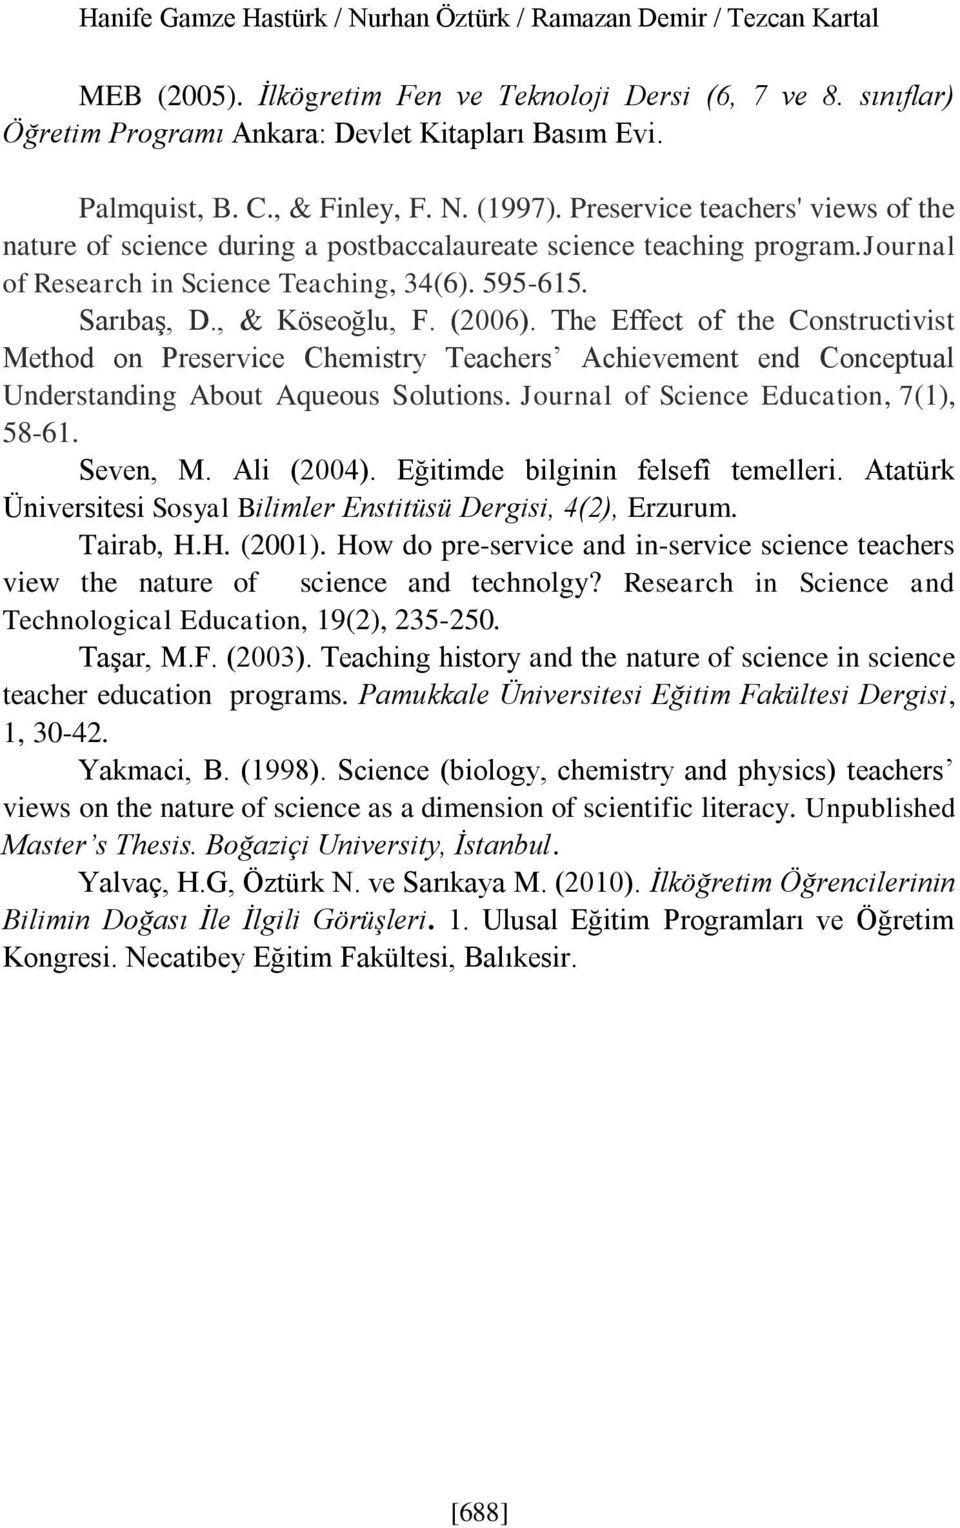 , & Köseoğlu, F. (26). The ffect of the onstructivist Method on Preservice hemistry Teachers chievement end onceptual Understanding bout queous Solutions. Journal of Science ducation, 7(1), 58-61.